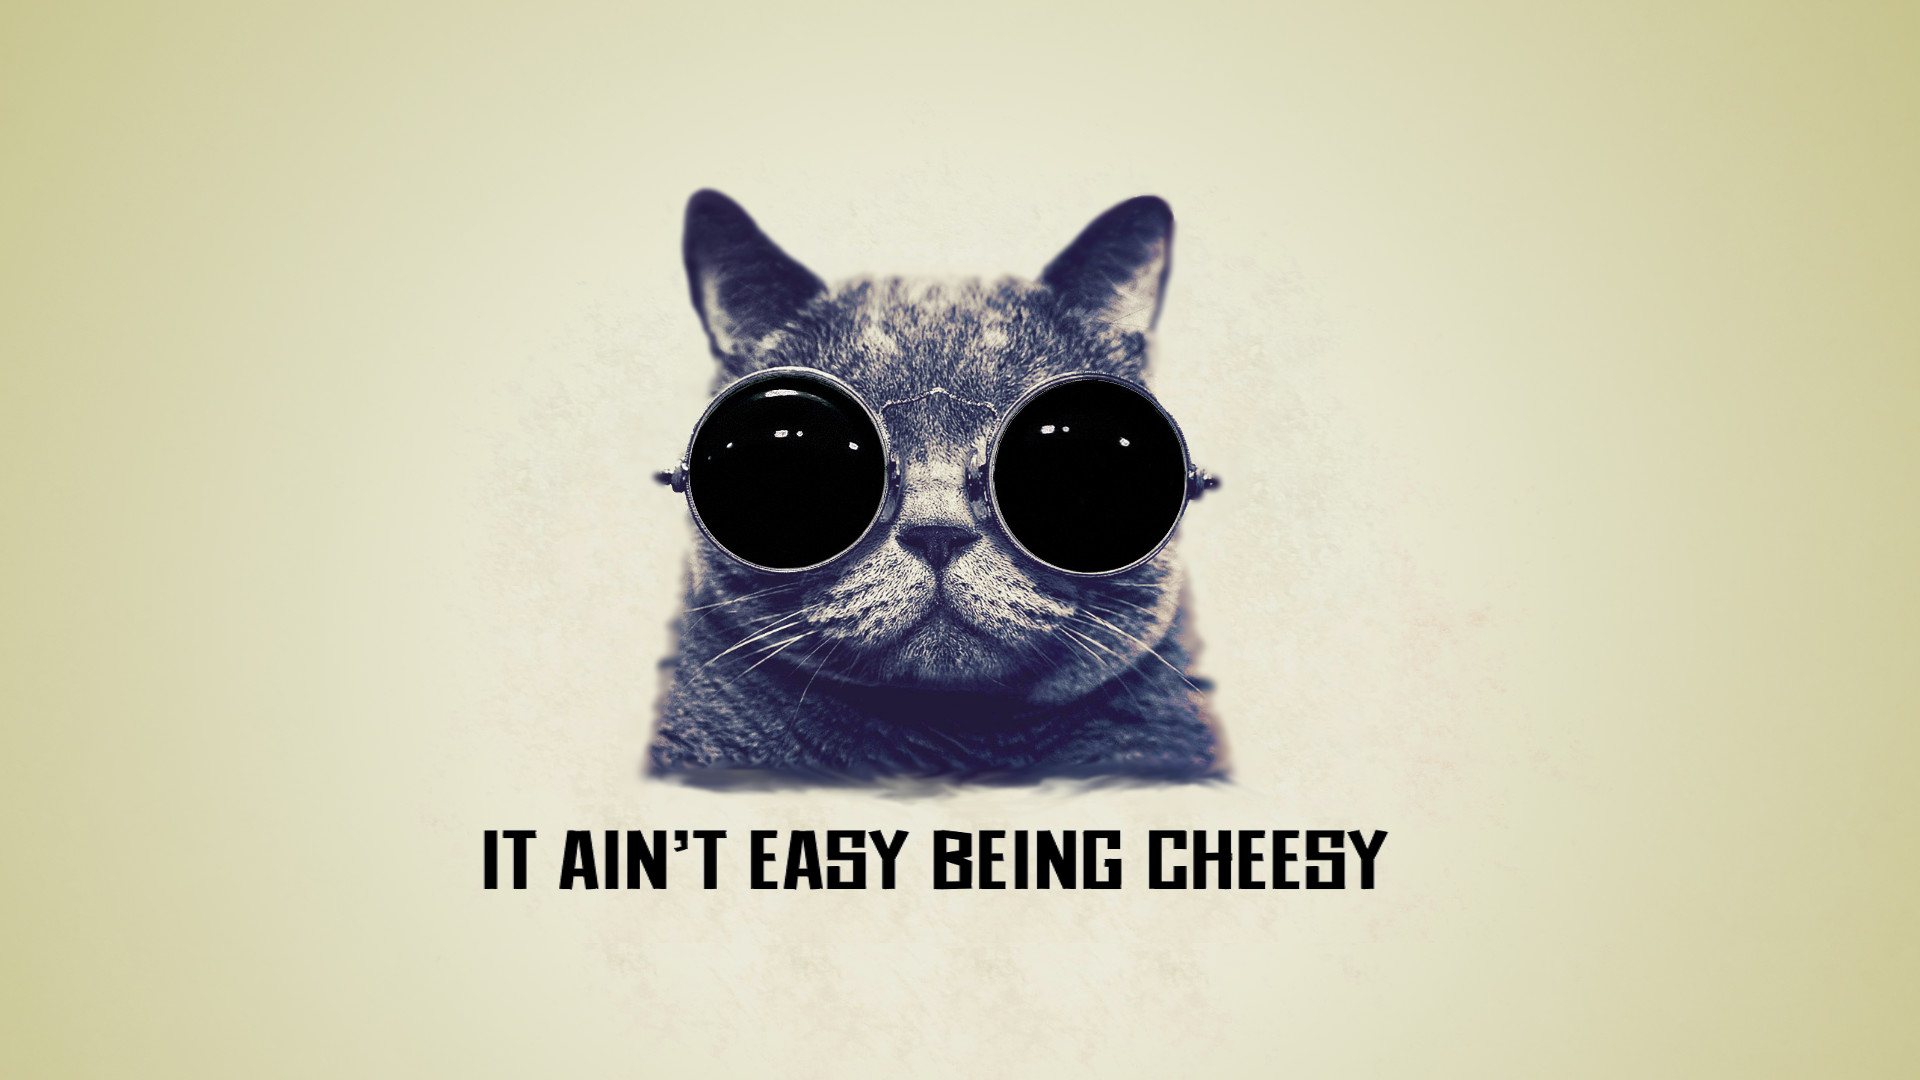 Res: 1920x1080, It ain't easy being cheesy cool cat wallpaper by saitoukazuma on .